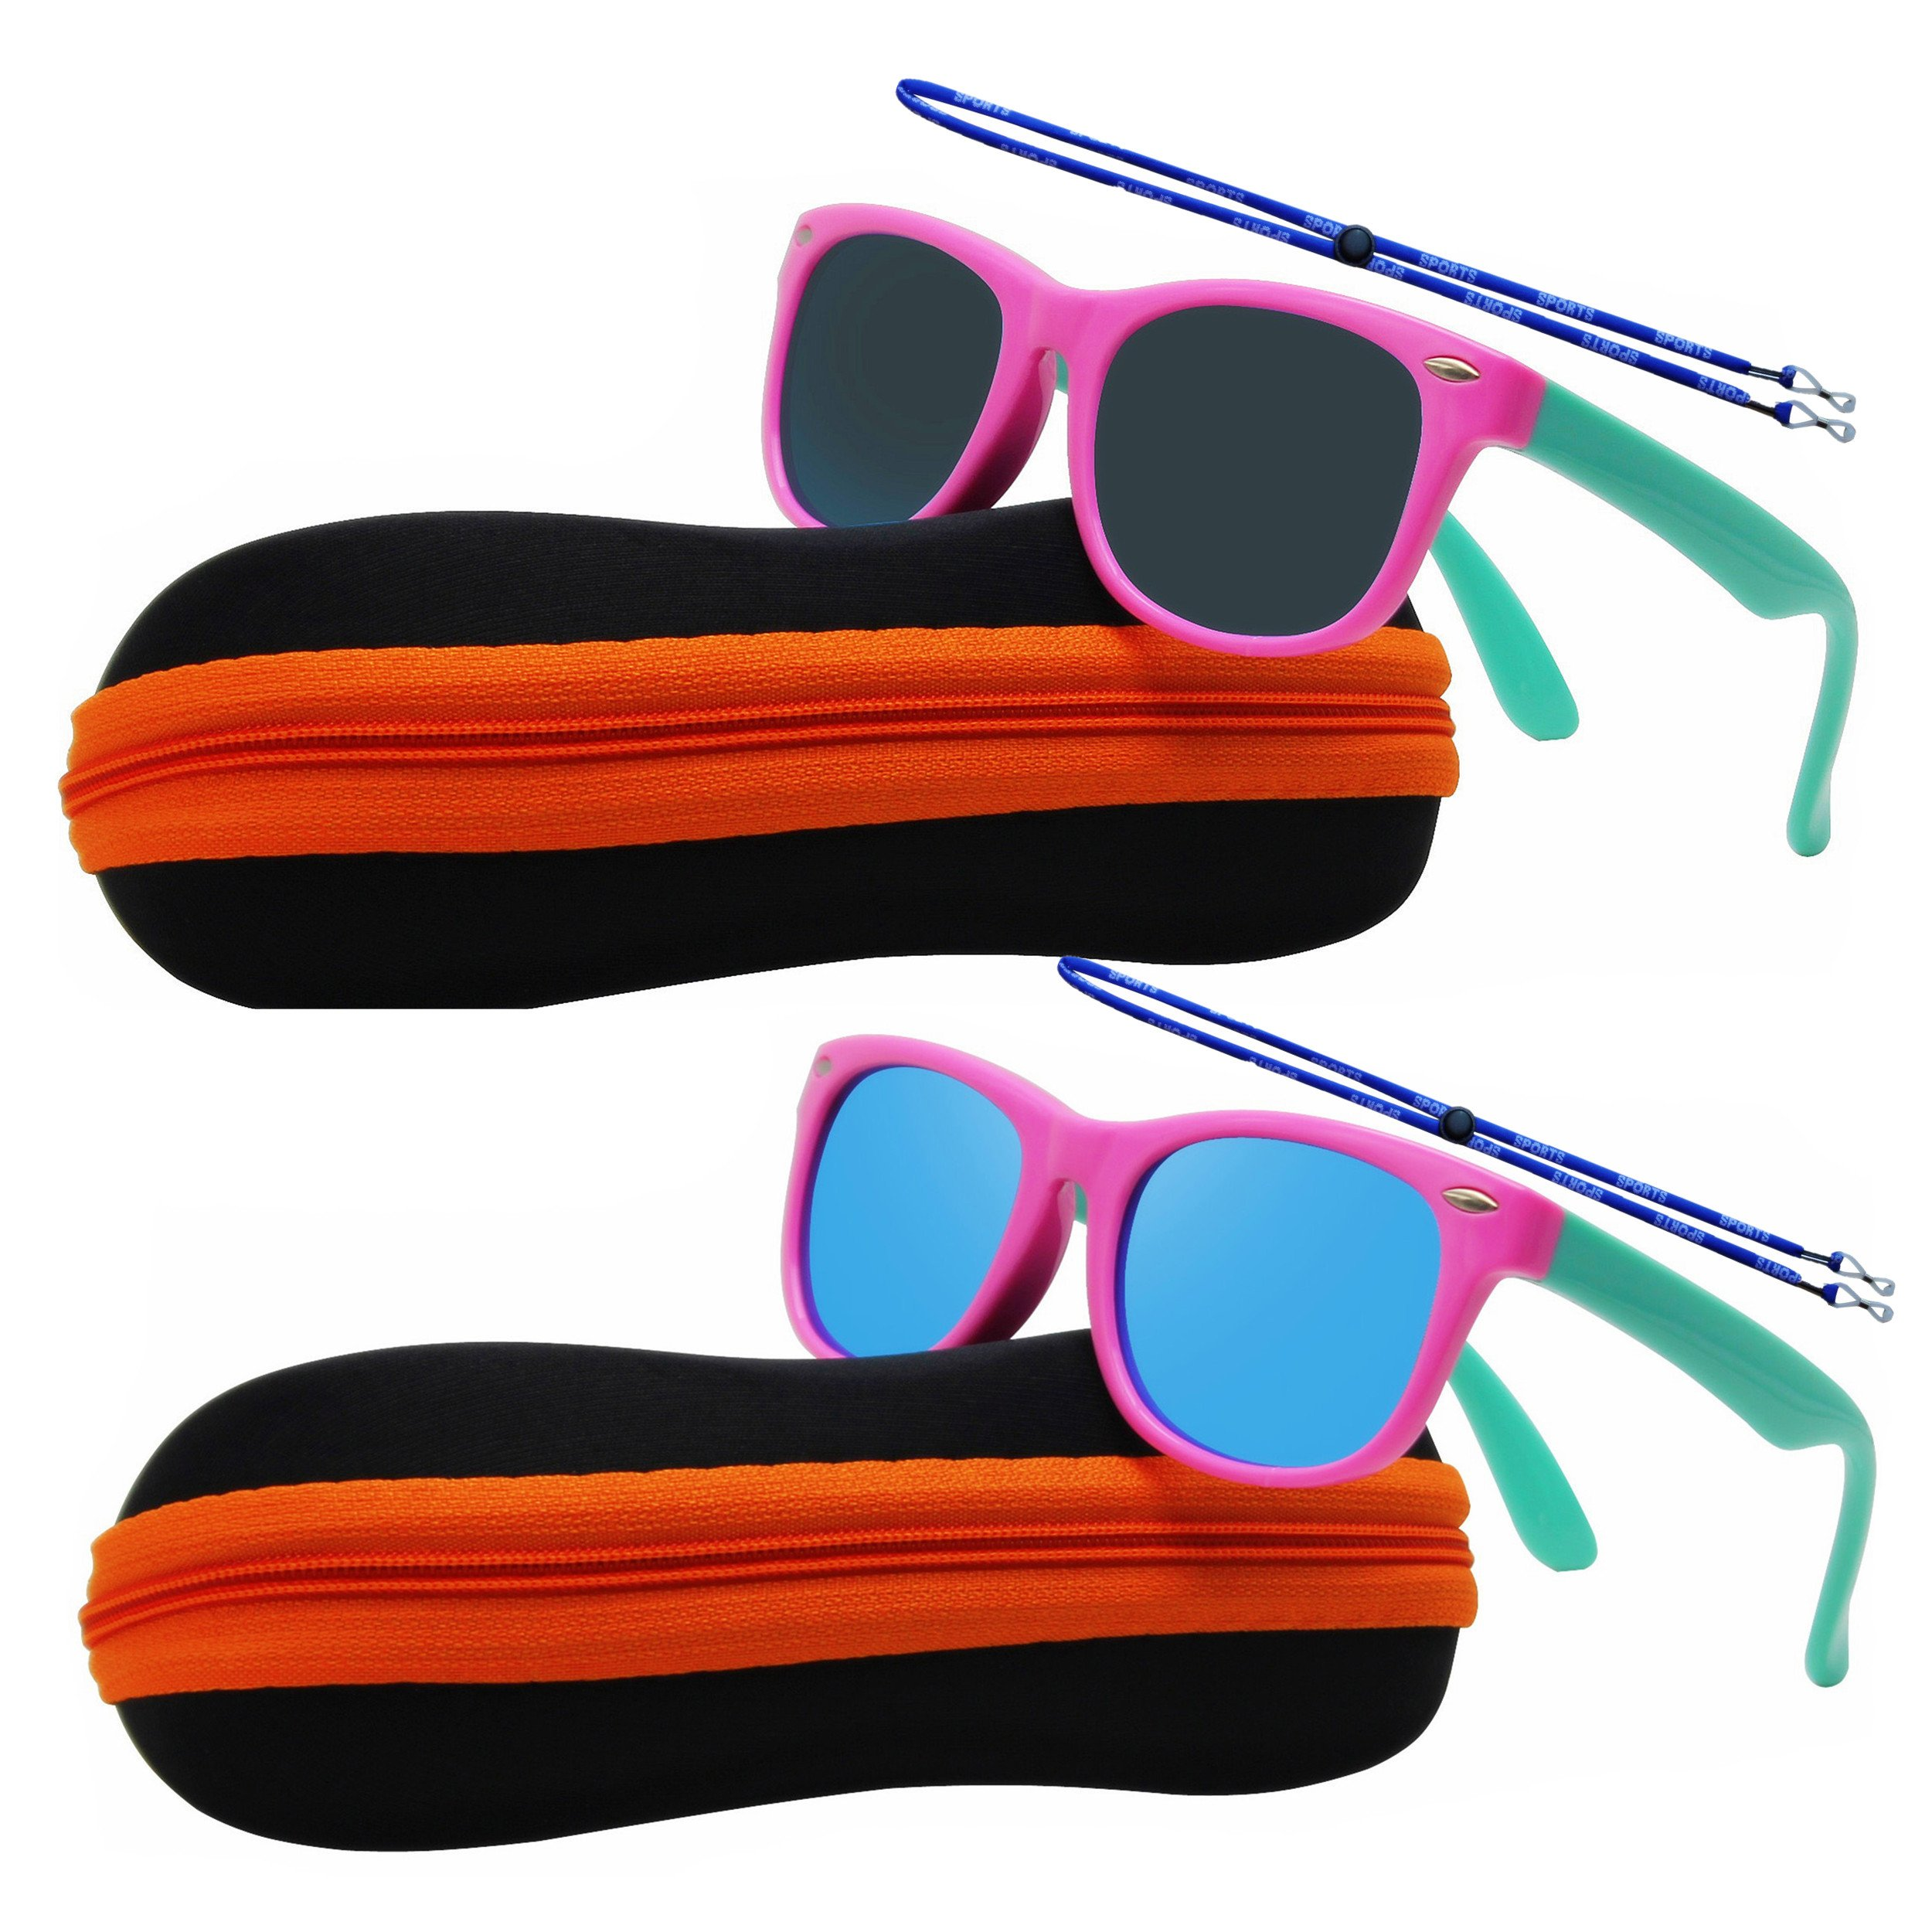 Kids Boys Girls Rubber Flexible Cat Eye Polarized Sunglasses With Case Strap Age 3-10 Years (Classic Pink 2 Packs)